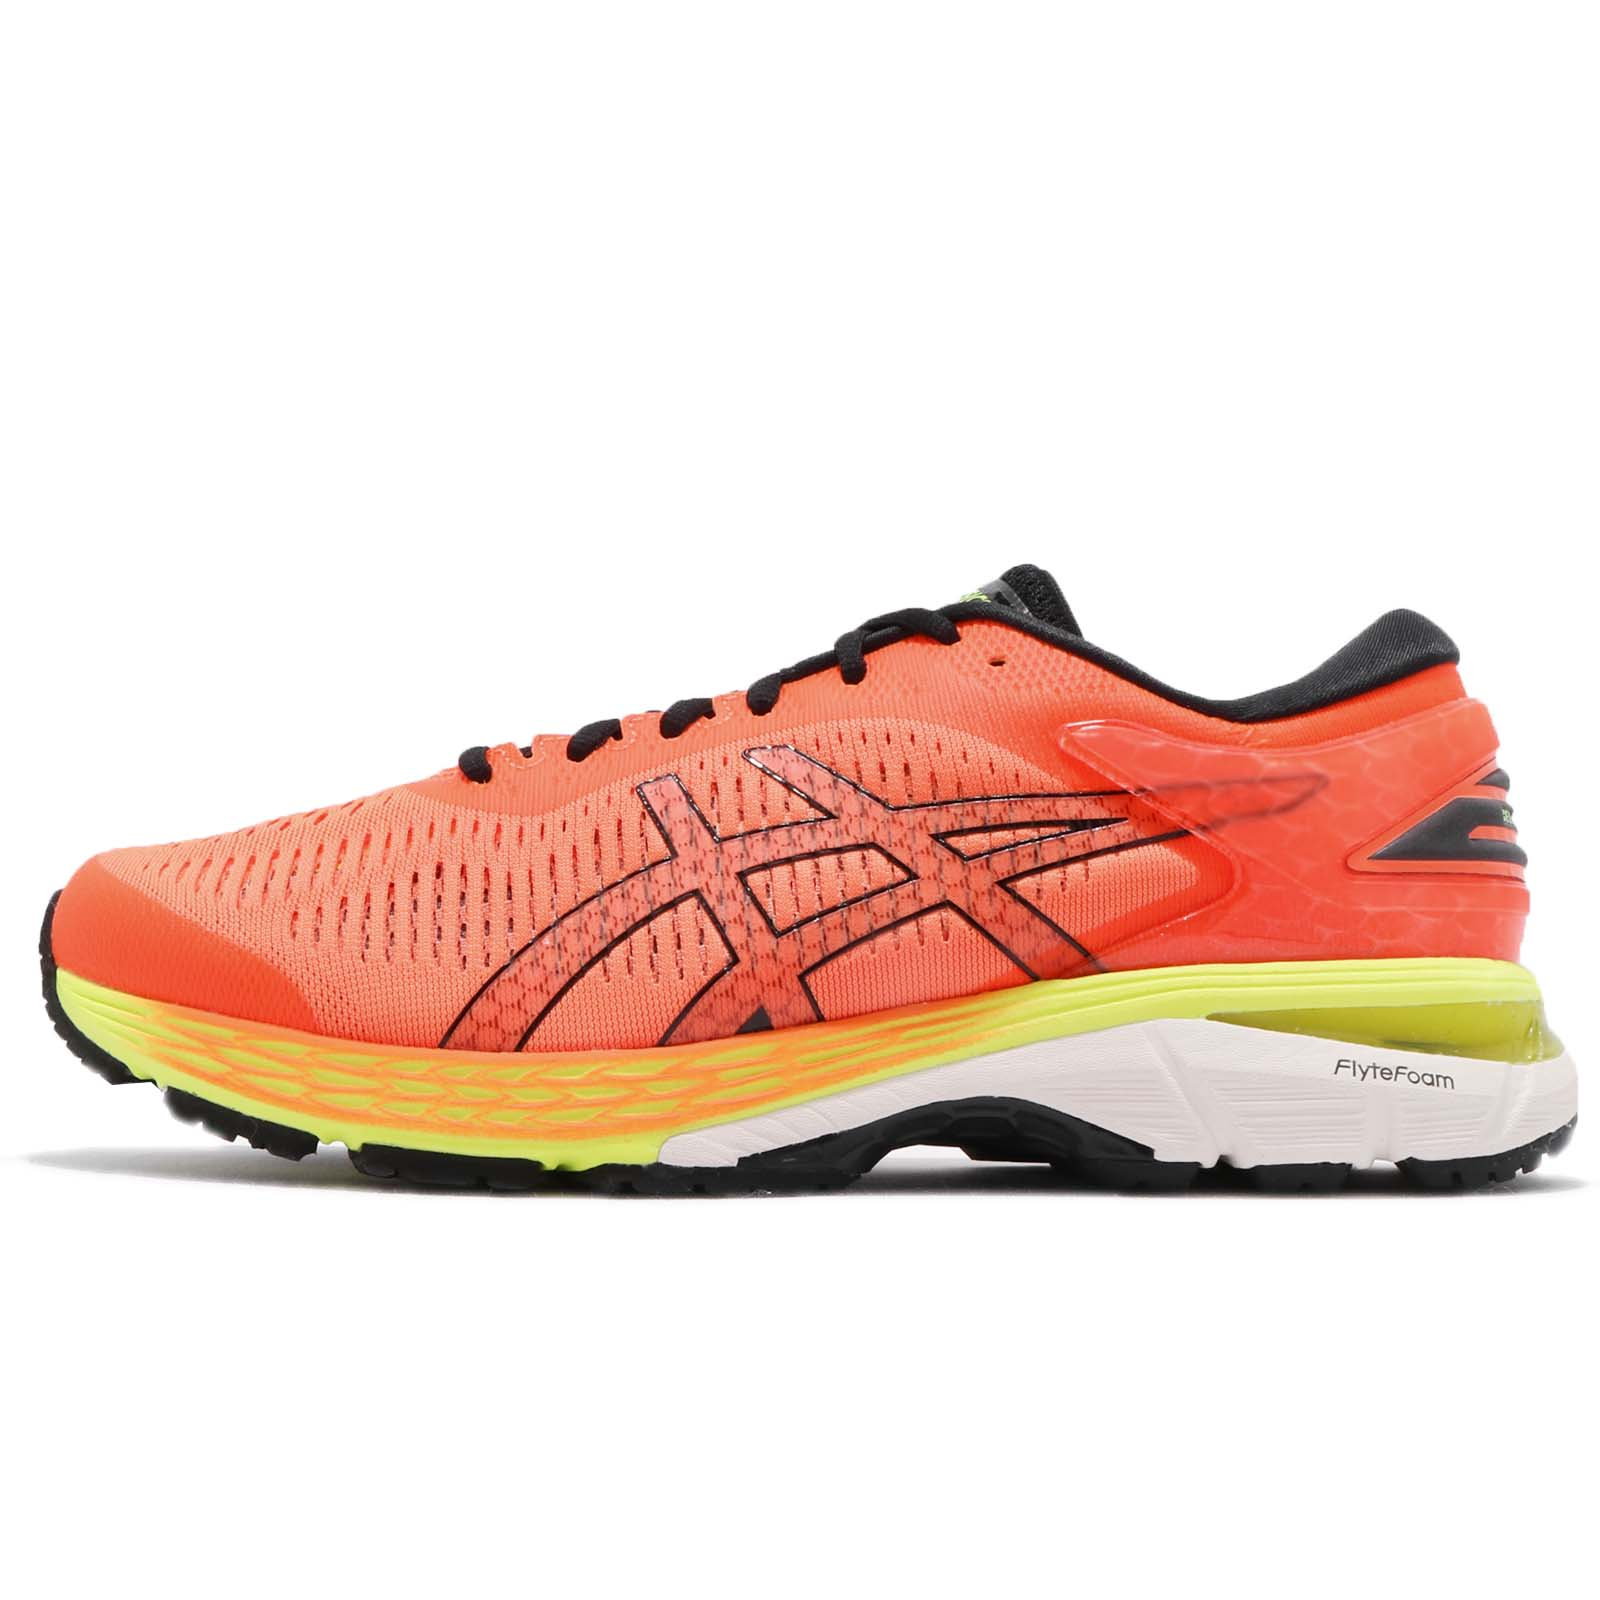 35e93e2f11c ... netherlands asics gel kayano 25 orange black white men running shoes  sneakers 1011a019 800 e1373 9dbf2